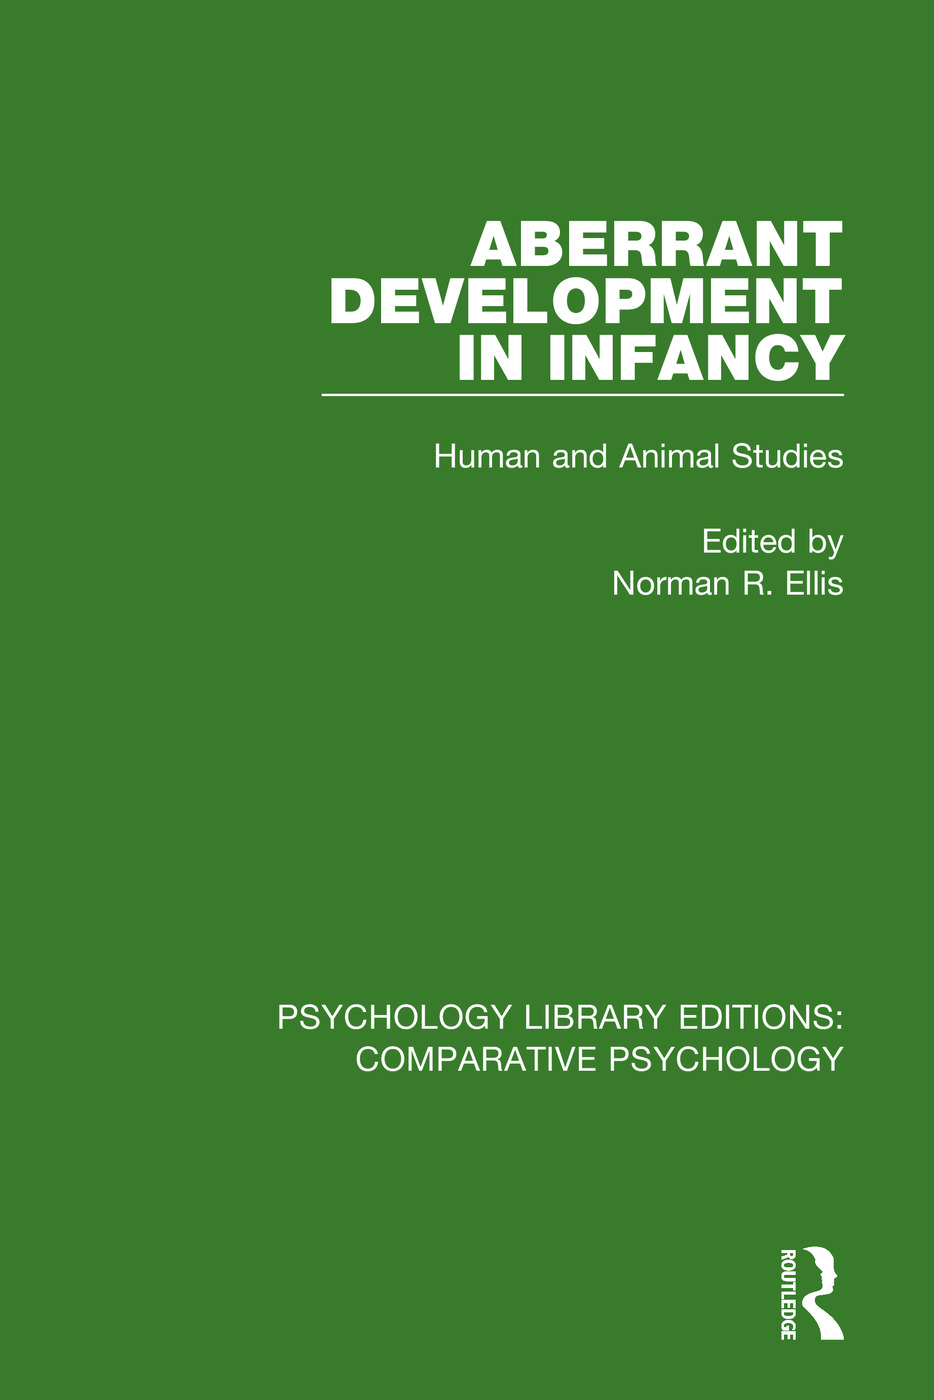 Aberrant Development in Infancy: Human and Animal Studies book cover